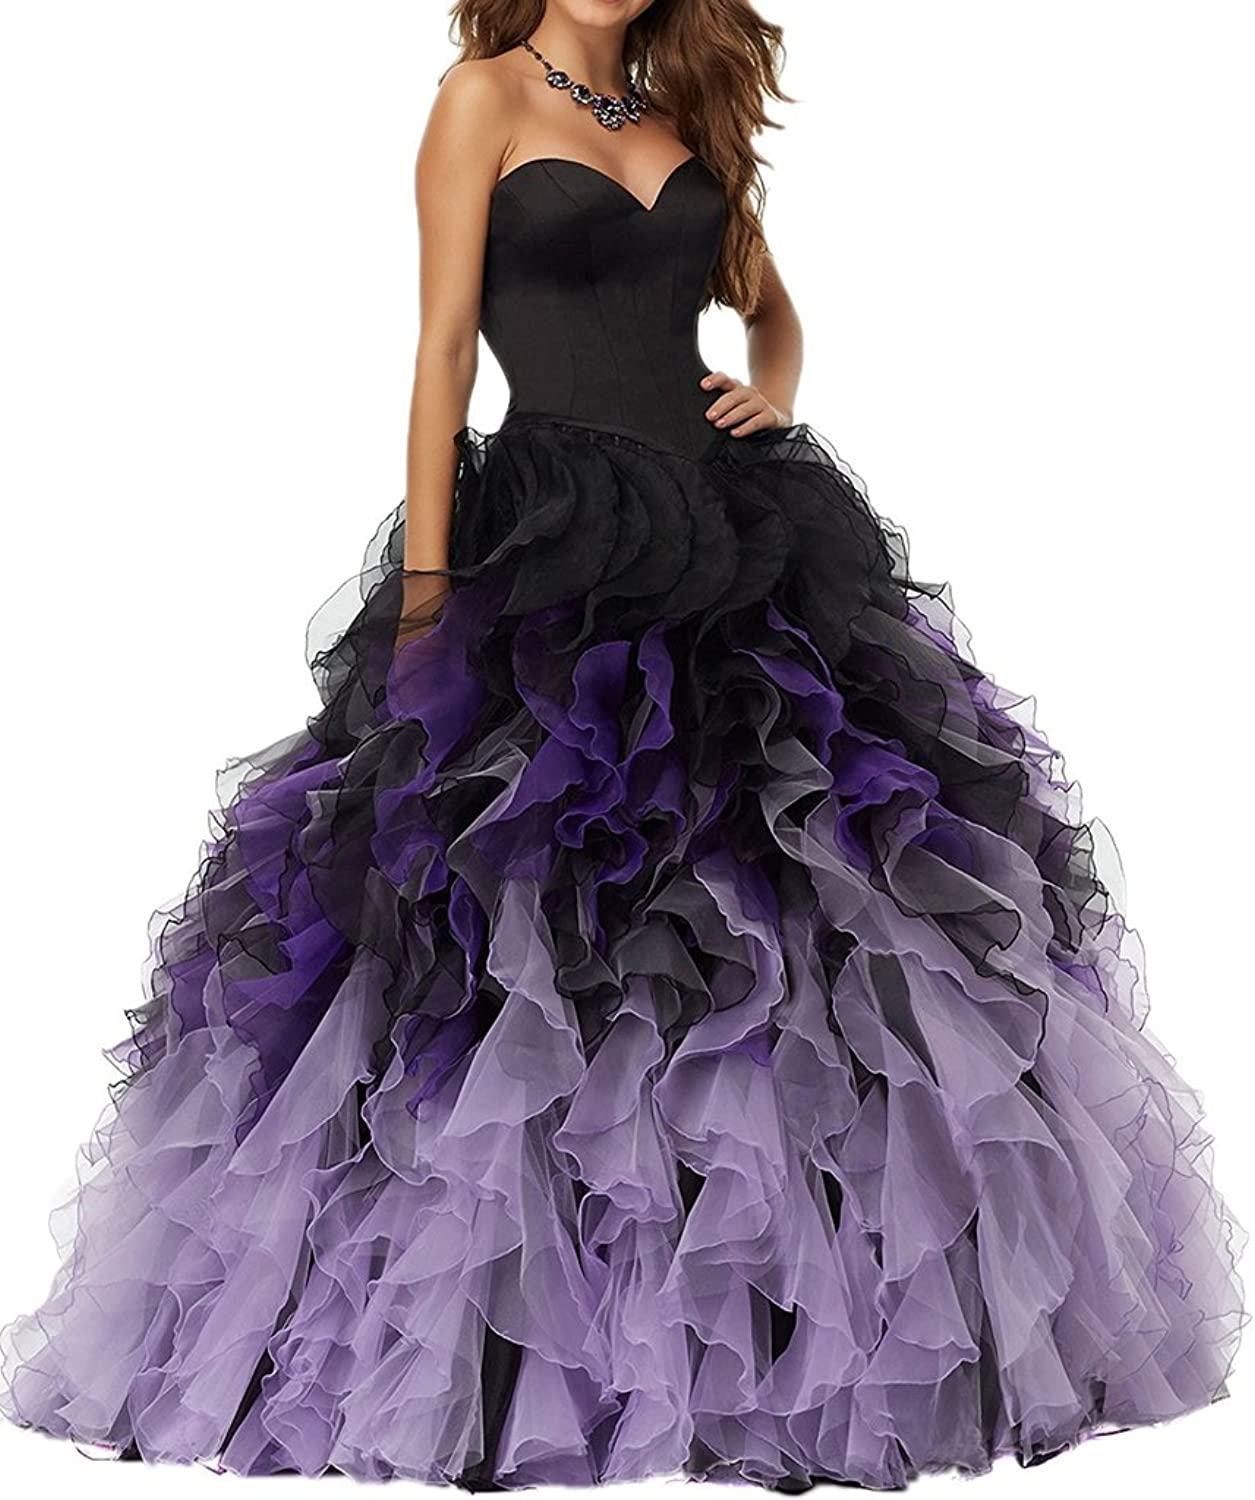 BEALEGAN Lady Women's Ball Gown Ombre Quinceanera Dresses Long Prom Gown